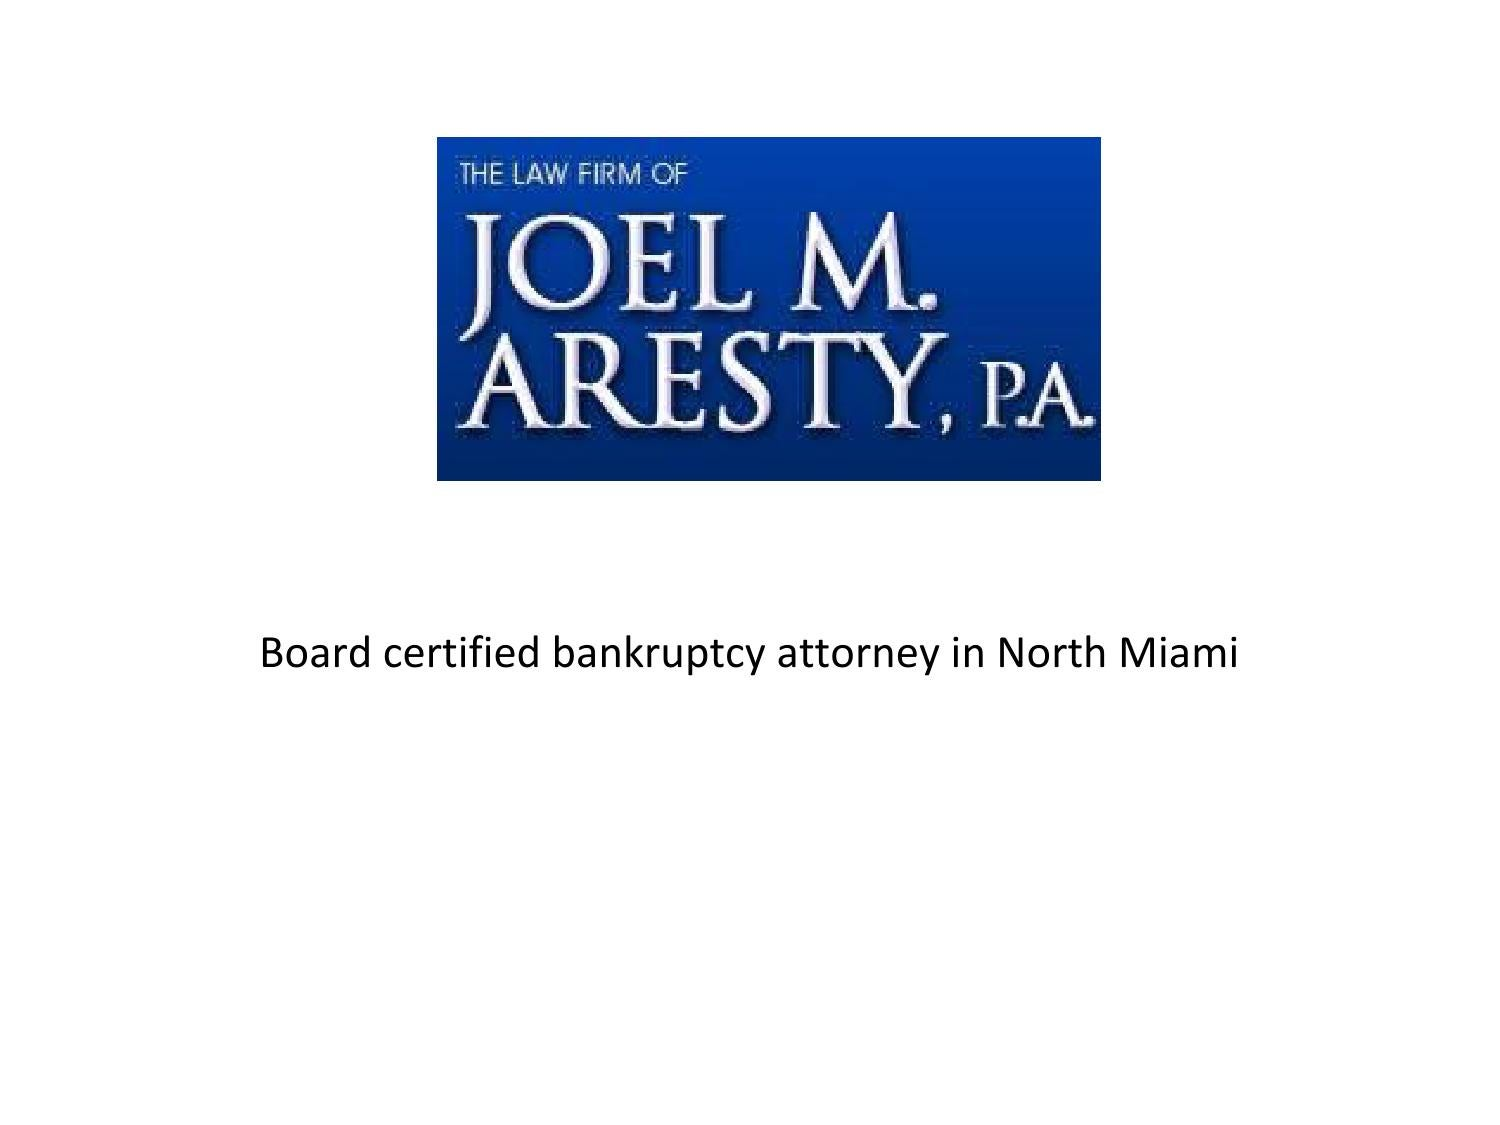 The law firm of joel m aresty, p a – board certified bankruptcy